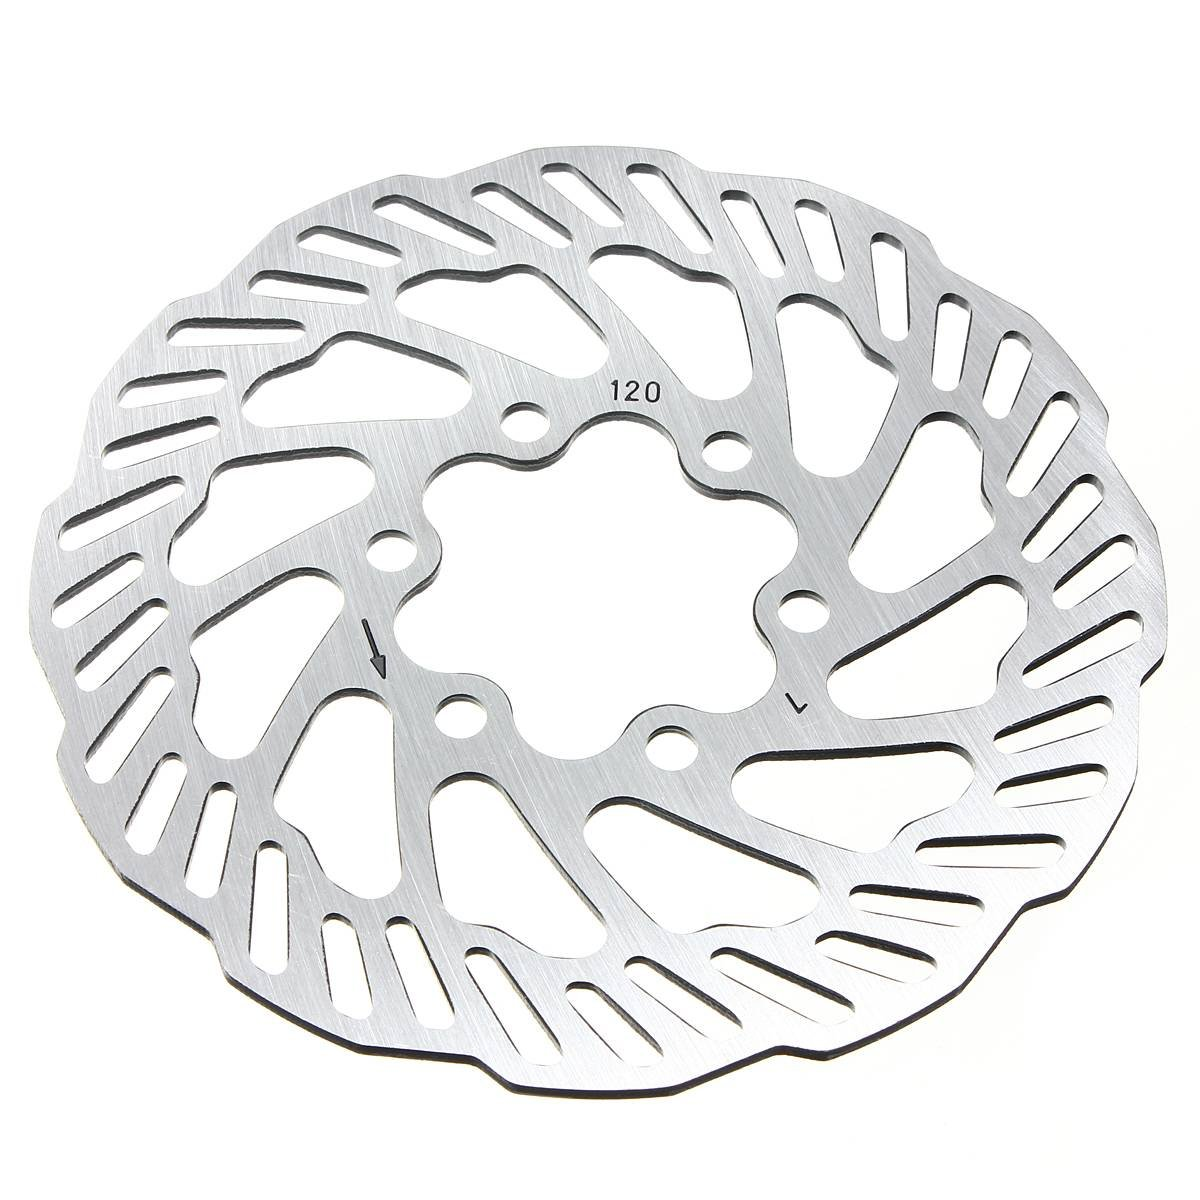 OUTERDO Cycling Bicycle Bike Brake Disc Rotors 120mm/140mm/160mm/180mm/203mm With Bolts 120mm by OUTERDO